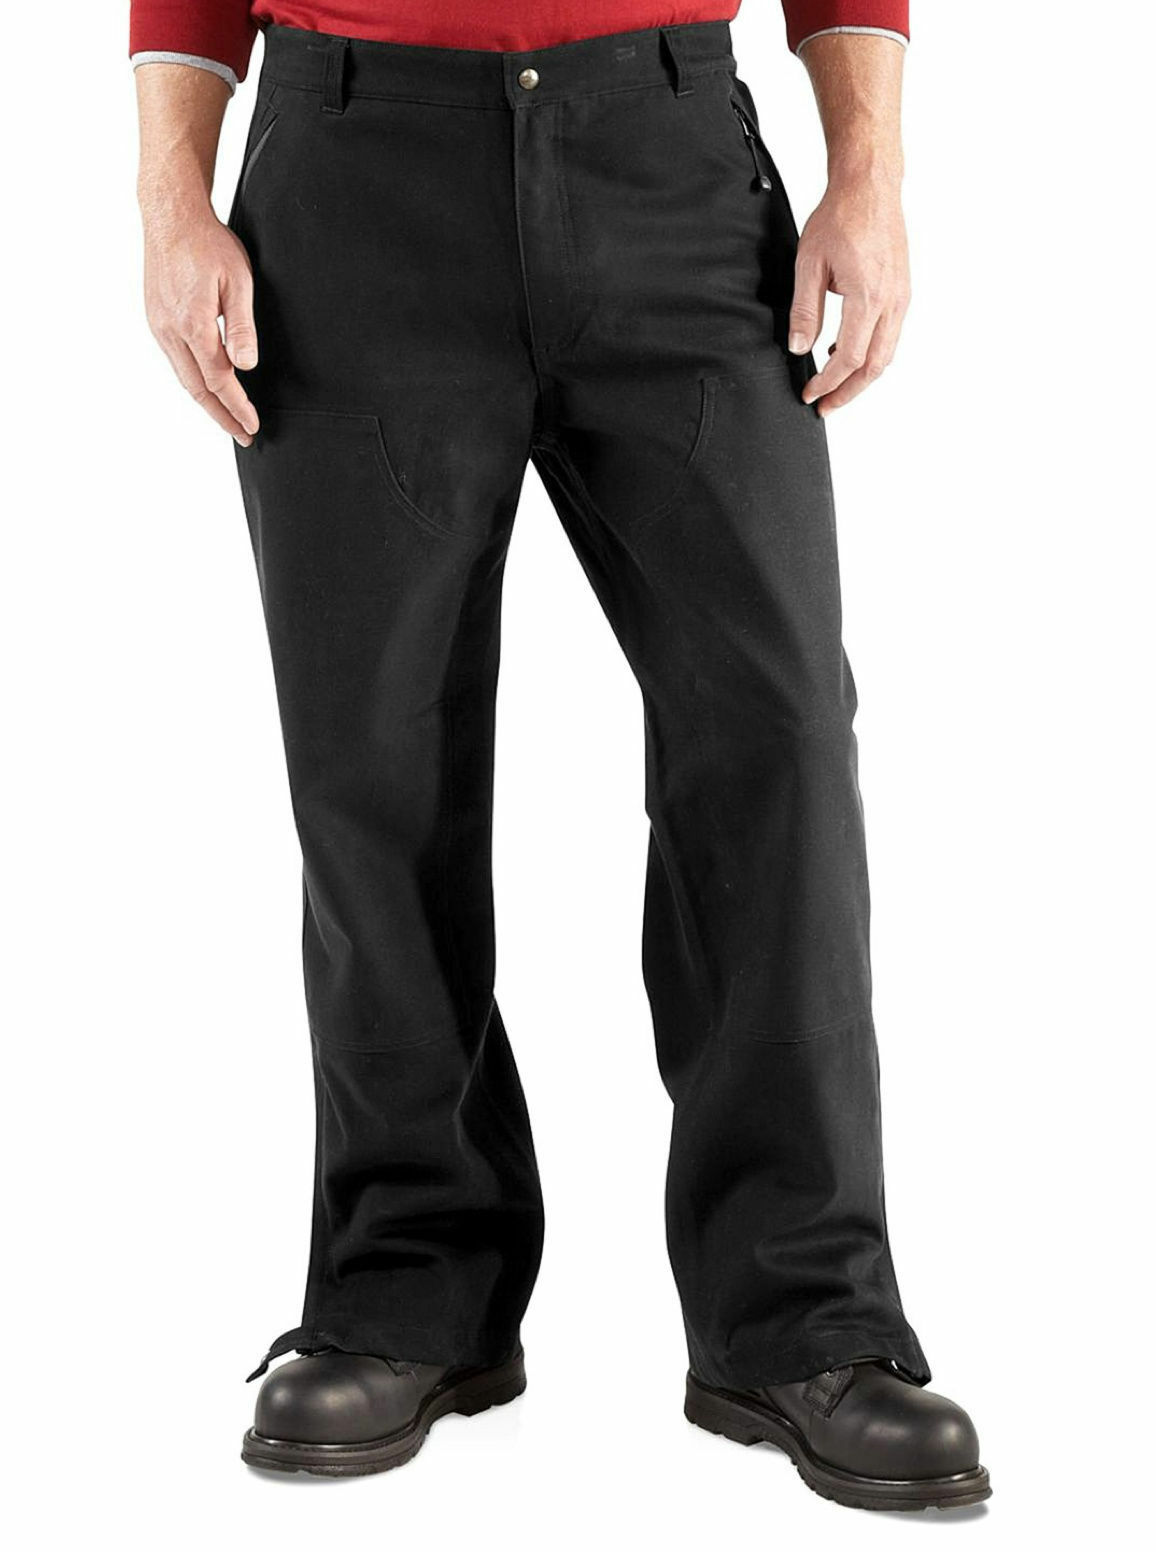 Carhartt Mens Astoria WP Waterproof Pants canvas work trousers 100119 S-XXL NEW